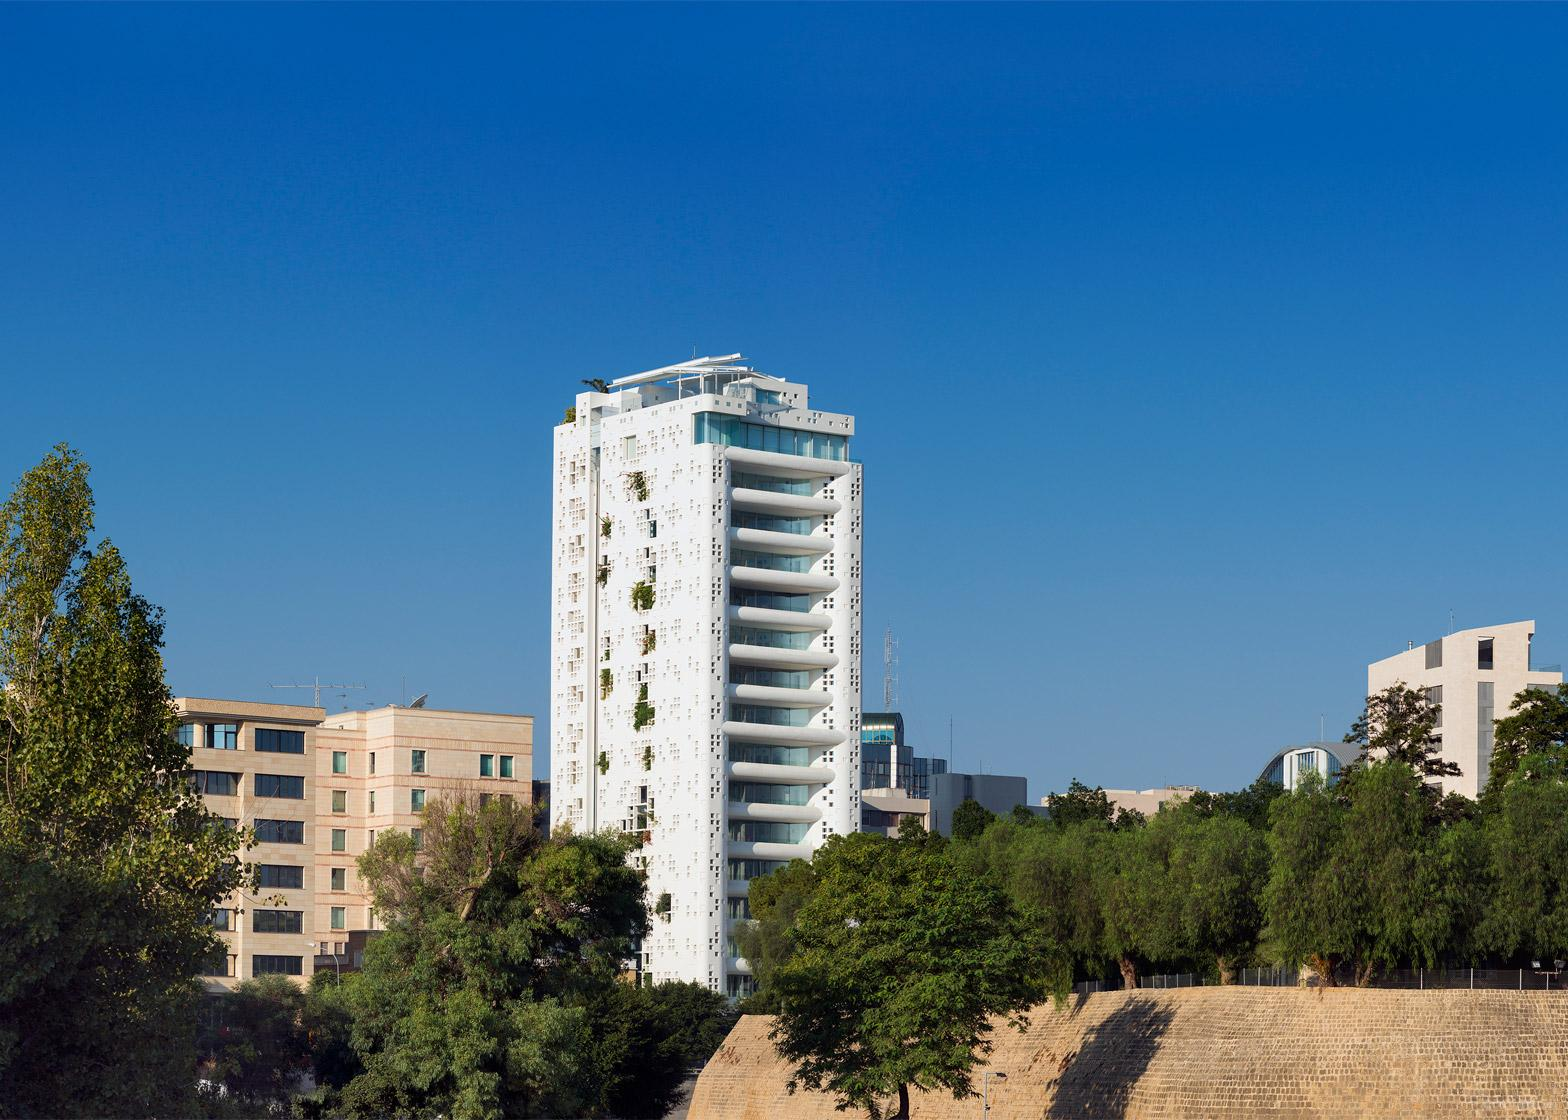 tower-25-jean-nouvel-nicosia-cyprus-pixellated-concrete_dezeen_1568_3